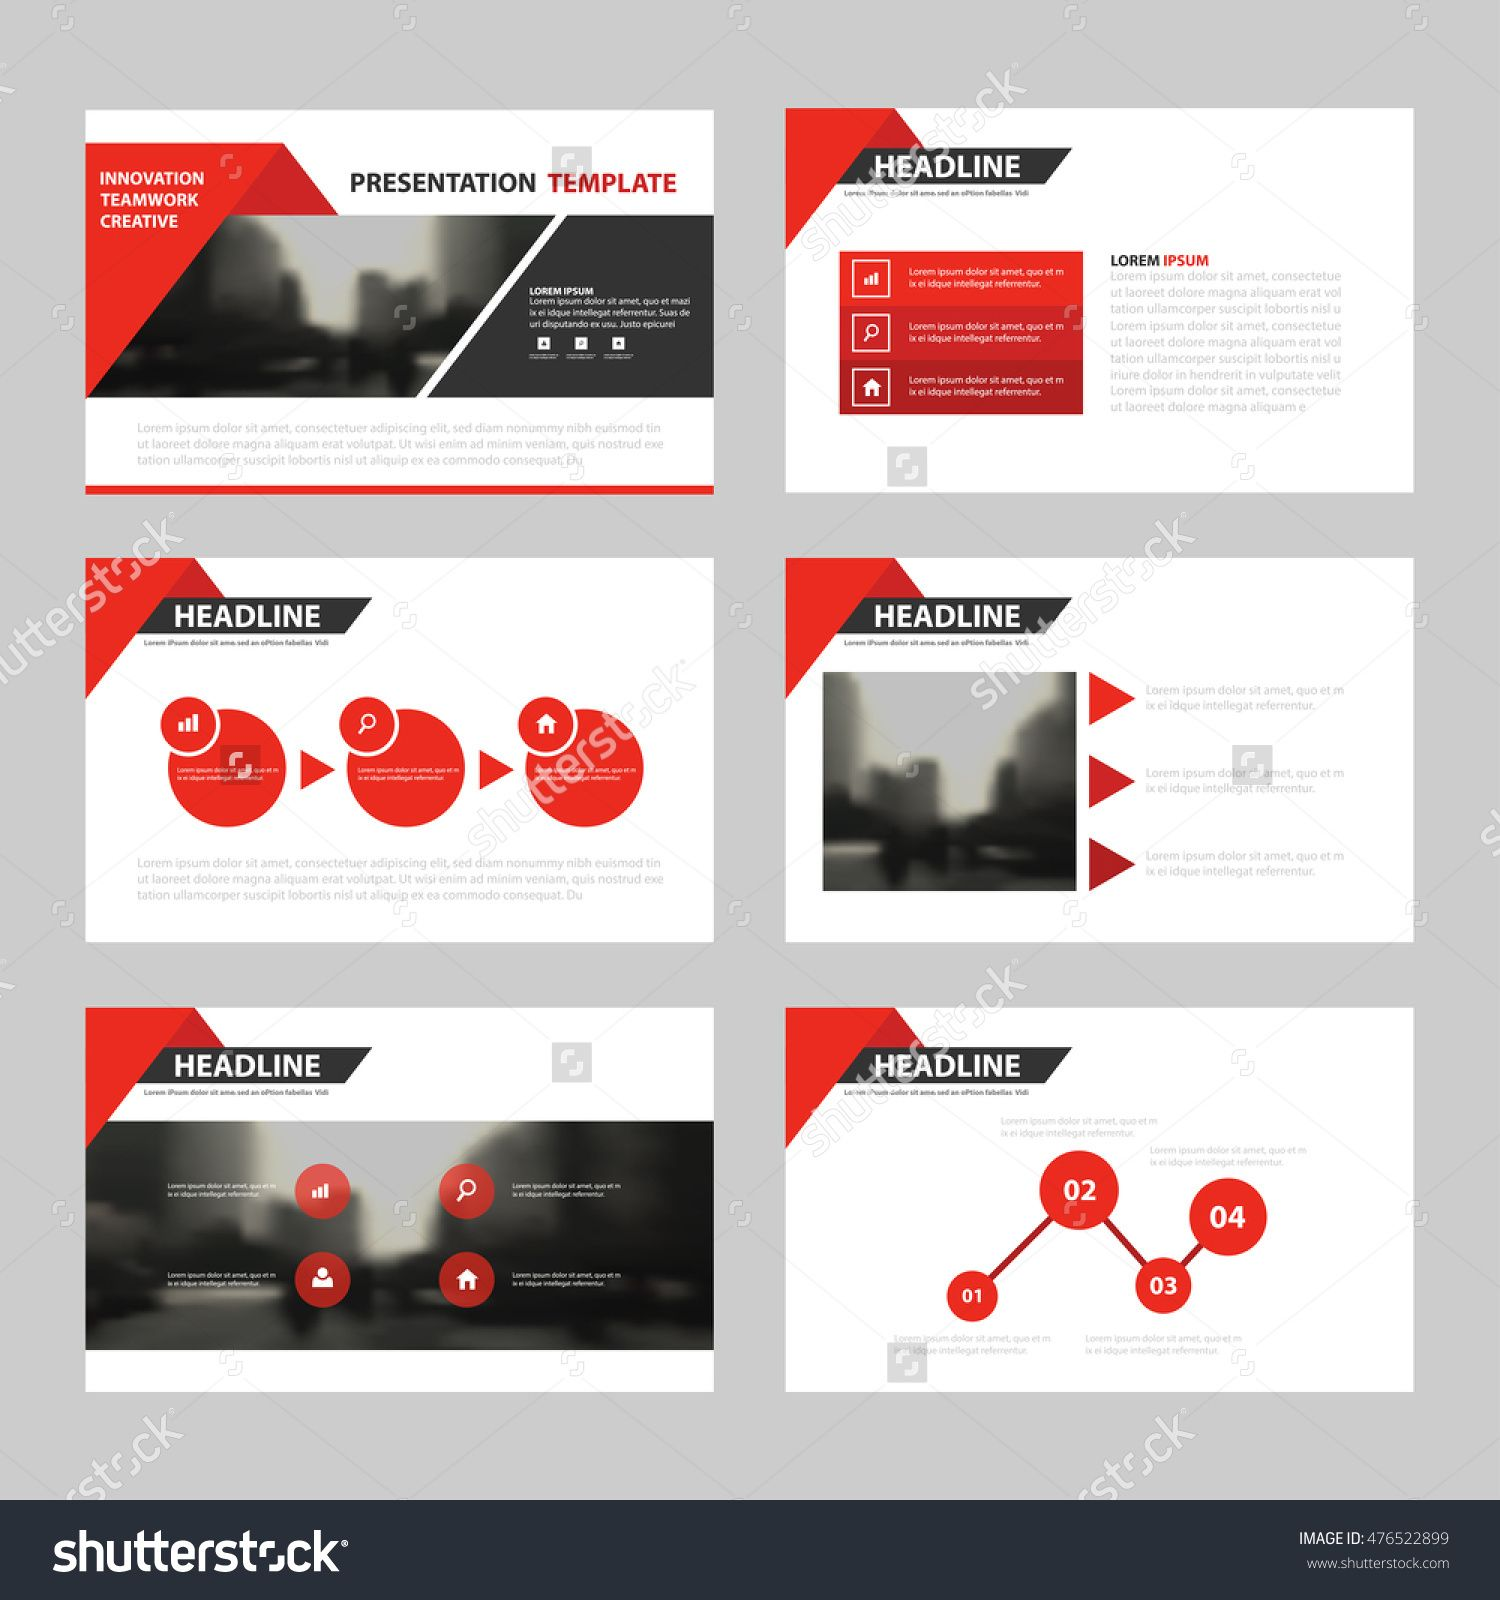 red triangle presentation templates, infographic elements template, Powerpoint templates